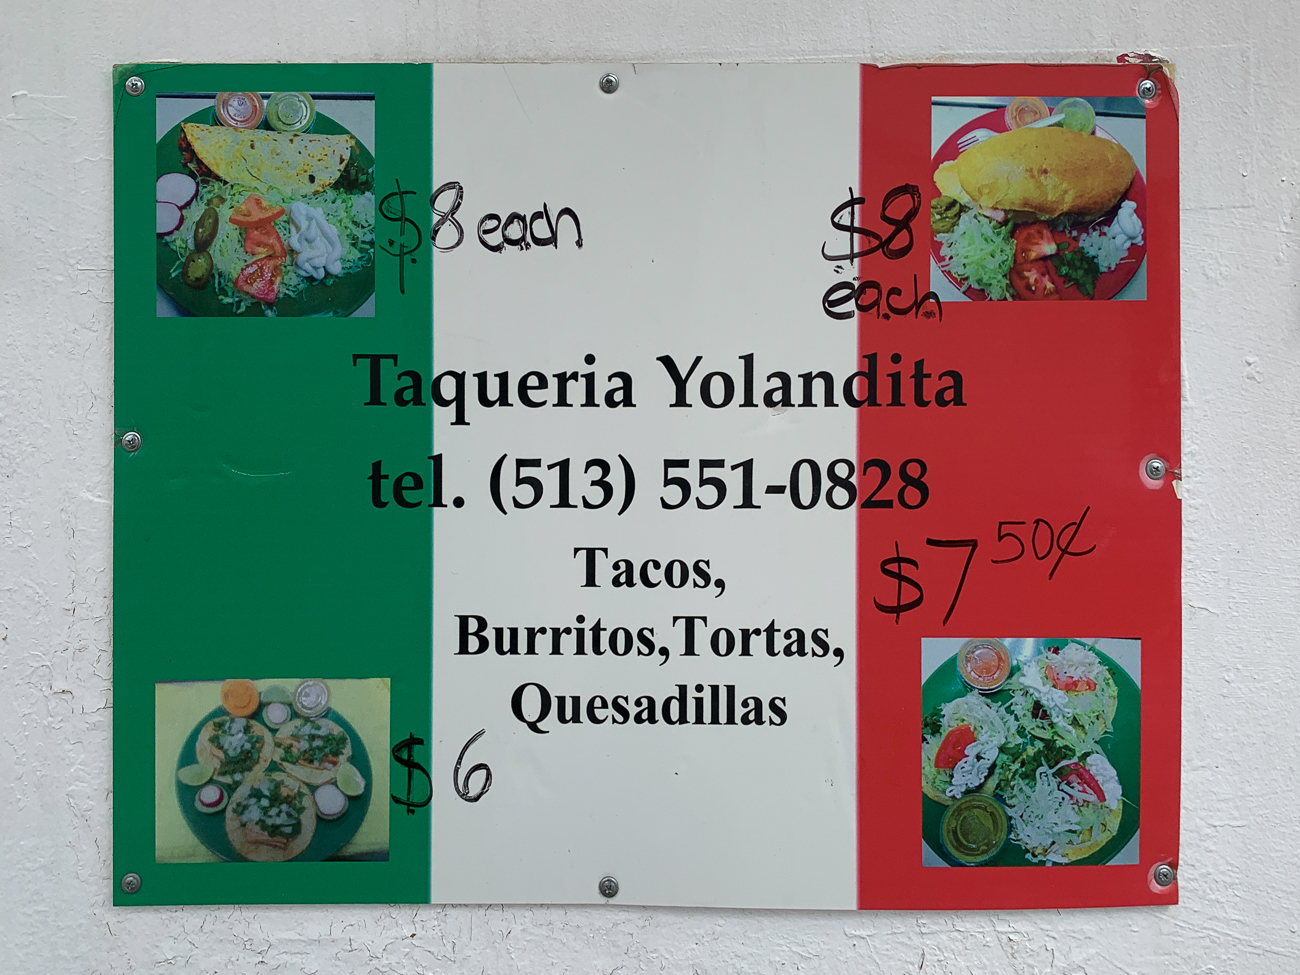 <p>PLACE: Taqueria Yolandita / ADDRESS: 1881 Westwood Ave (Fairmount) / DESCRIPTION: You're going to want to hit Taqueria Yolandita on a nice day, as it's a small food truck and you'll be eating outside. They have a larger selection of options than I expected. I went with both the lengua (beef tongue) and the chicken tacos, and I was not disappointed. They had options for sour cream, lettuce, and tomato, but because I had been having so many delicious tacos with the simple cilantro and onion combo, I continued that trend (and continued to be sold on it). This spot is a little off the beaten path, but it's well worth the trek. / Image: Shawn Braley // Published: 5.28.19</p>